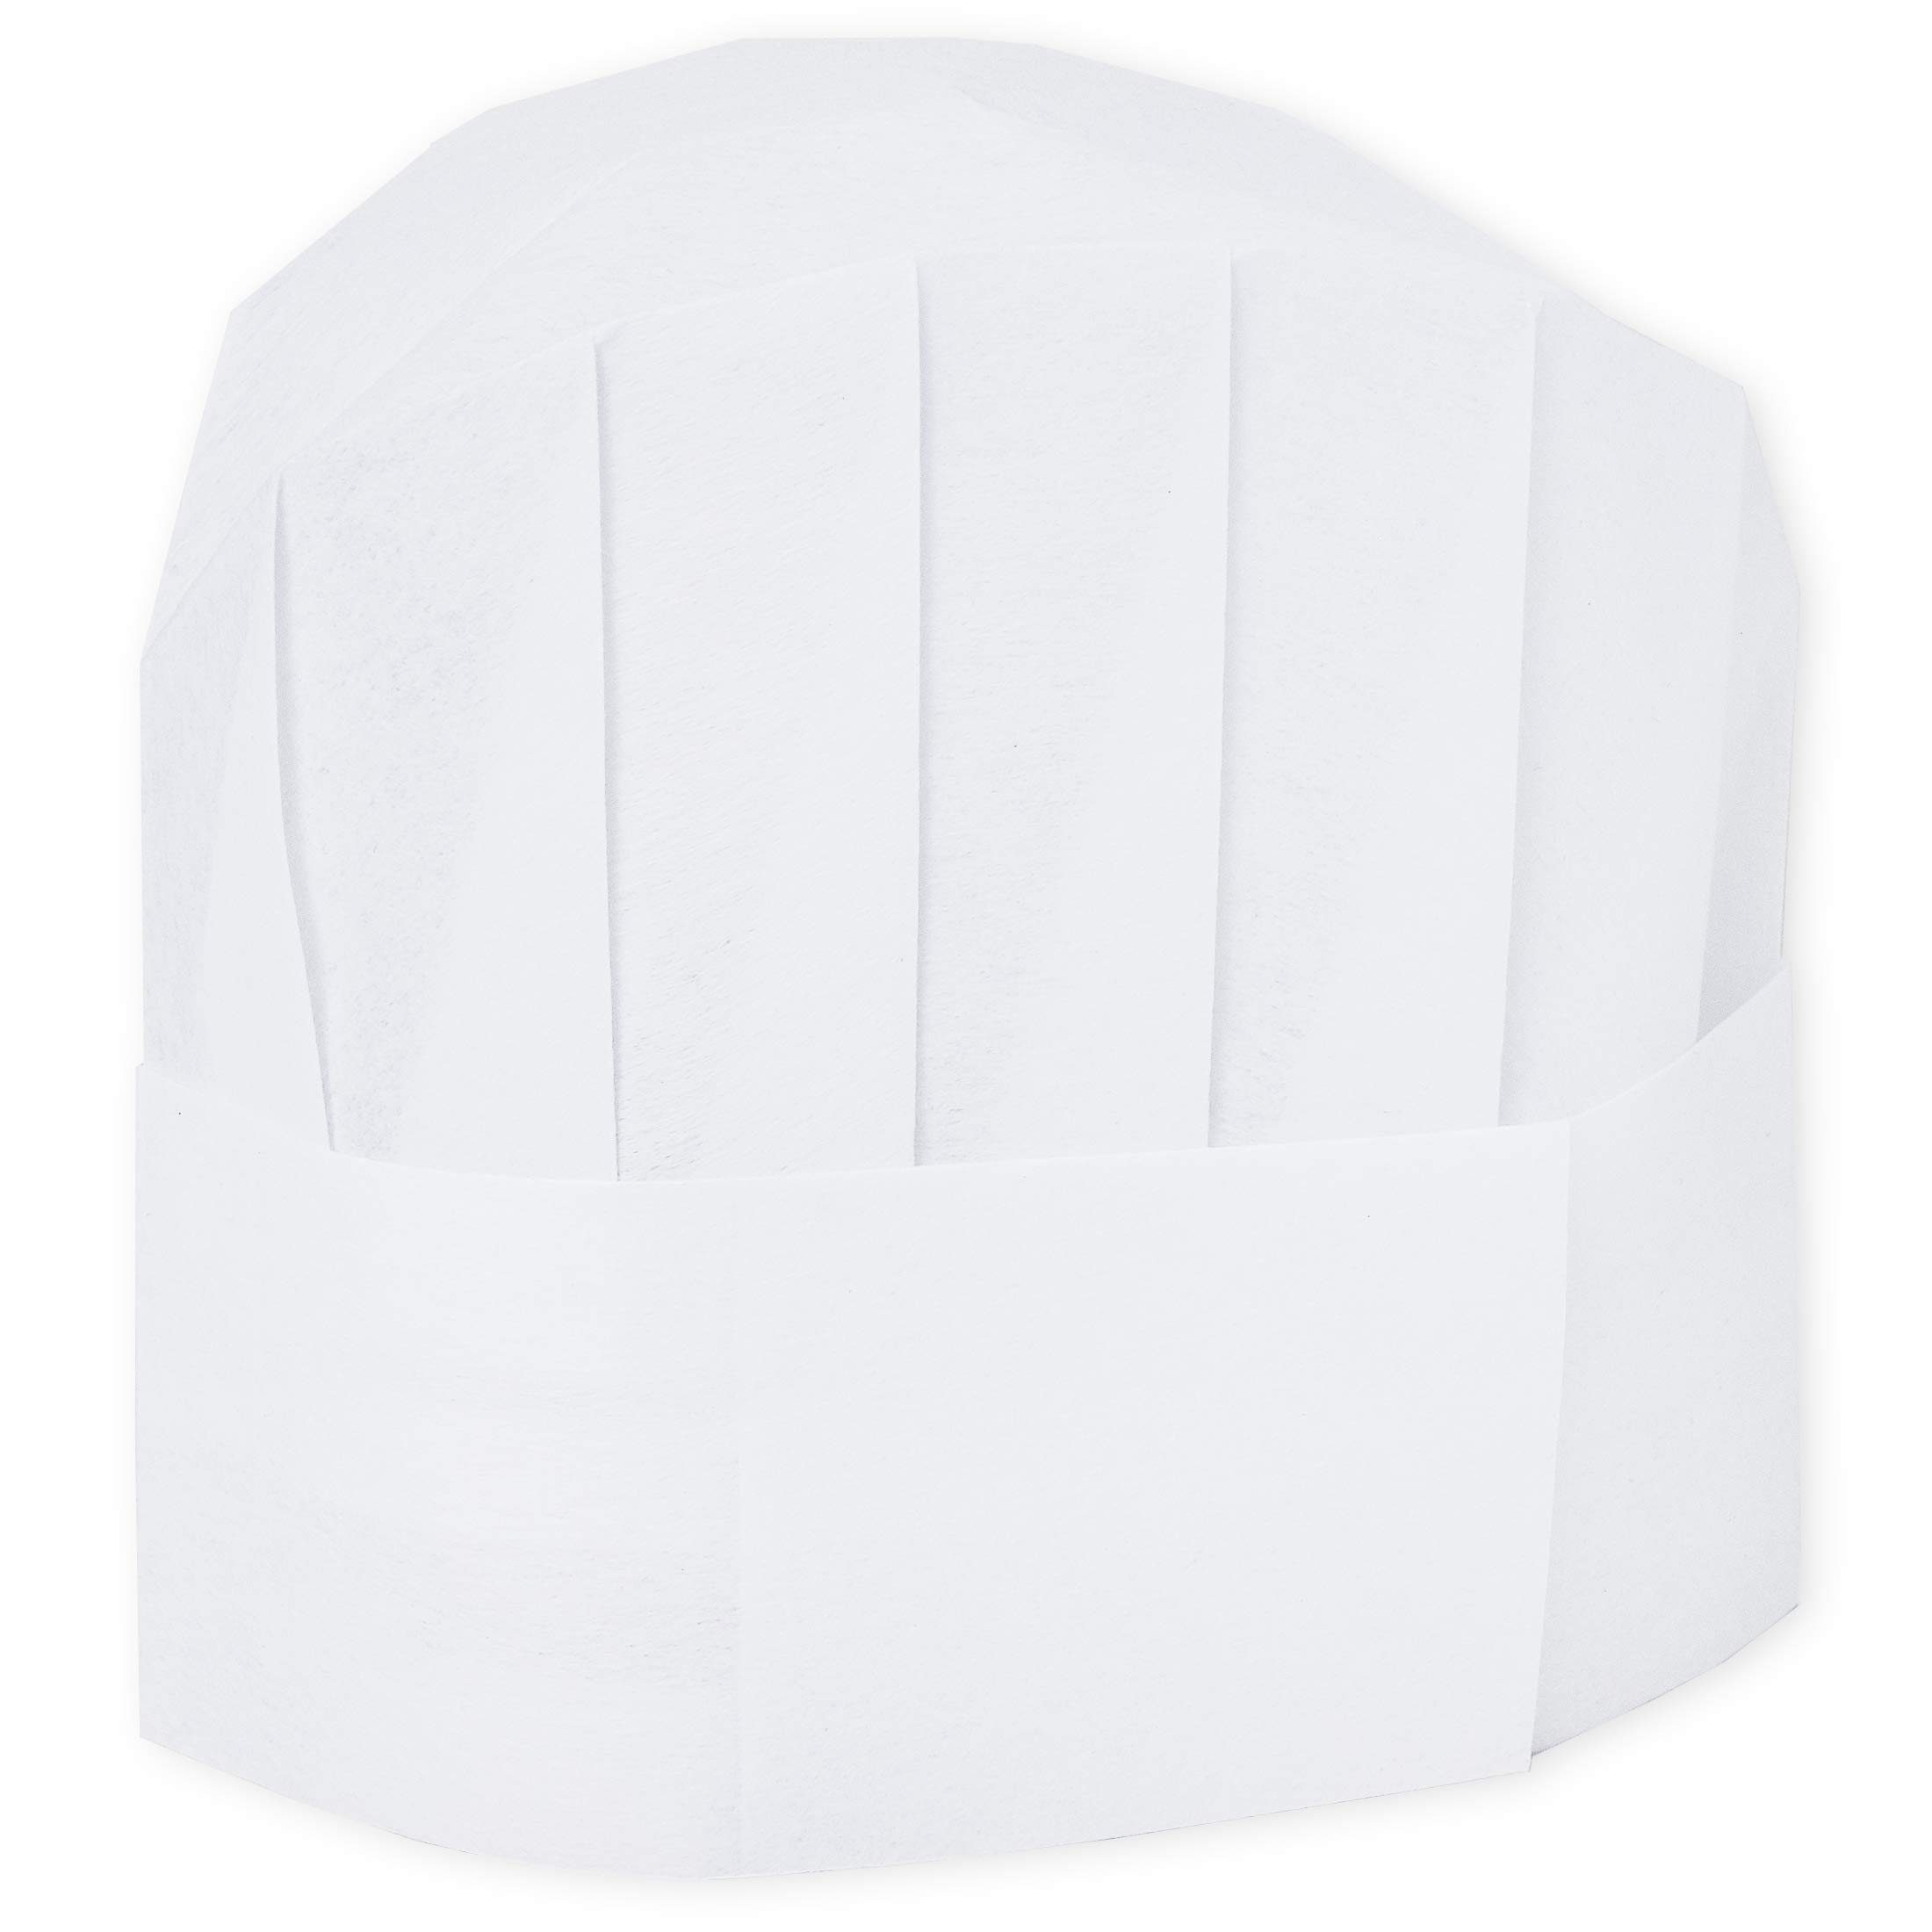 Chef Hats – 24-Pack Disposable White Paper Chef Toques, Chef Supplies, Adjustable Professional Kitchen Chef Caps for Baking, Culinary Hygiene, Cooking Safety, 20-22 Inches in Circumference